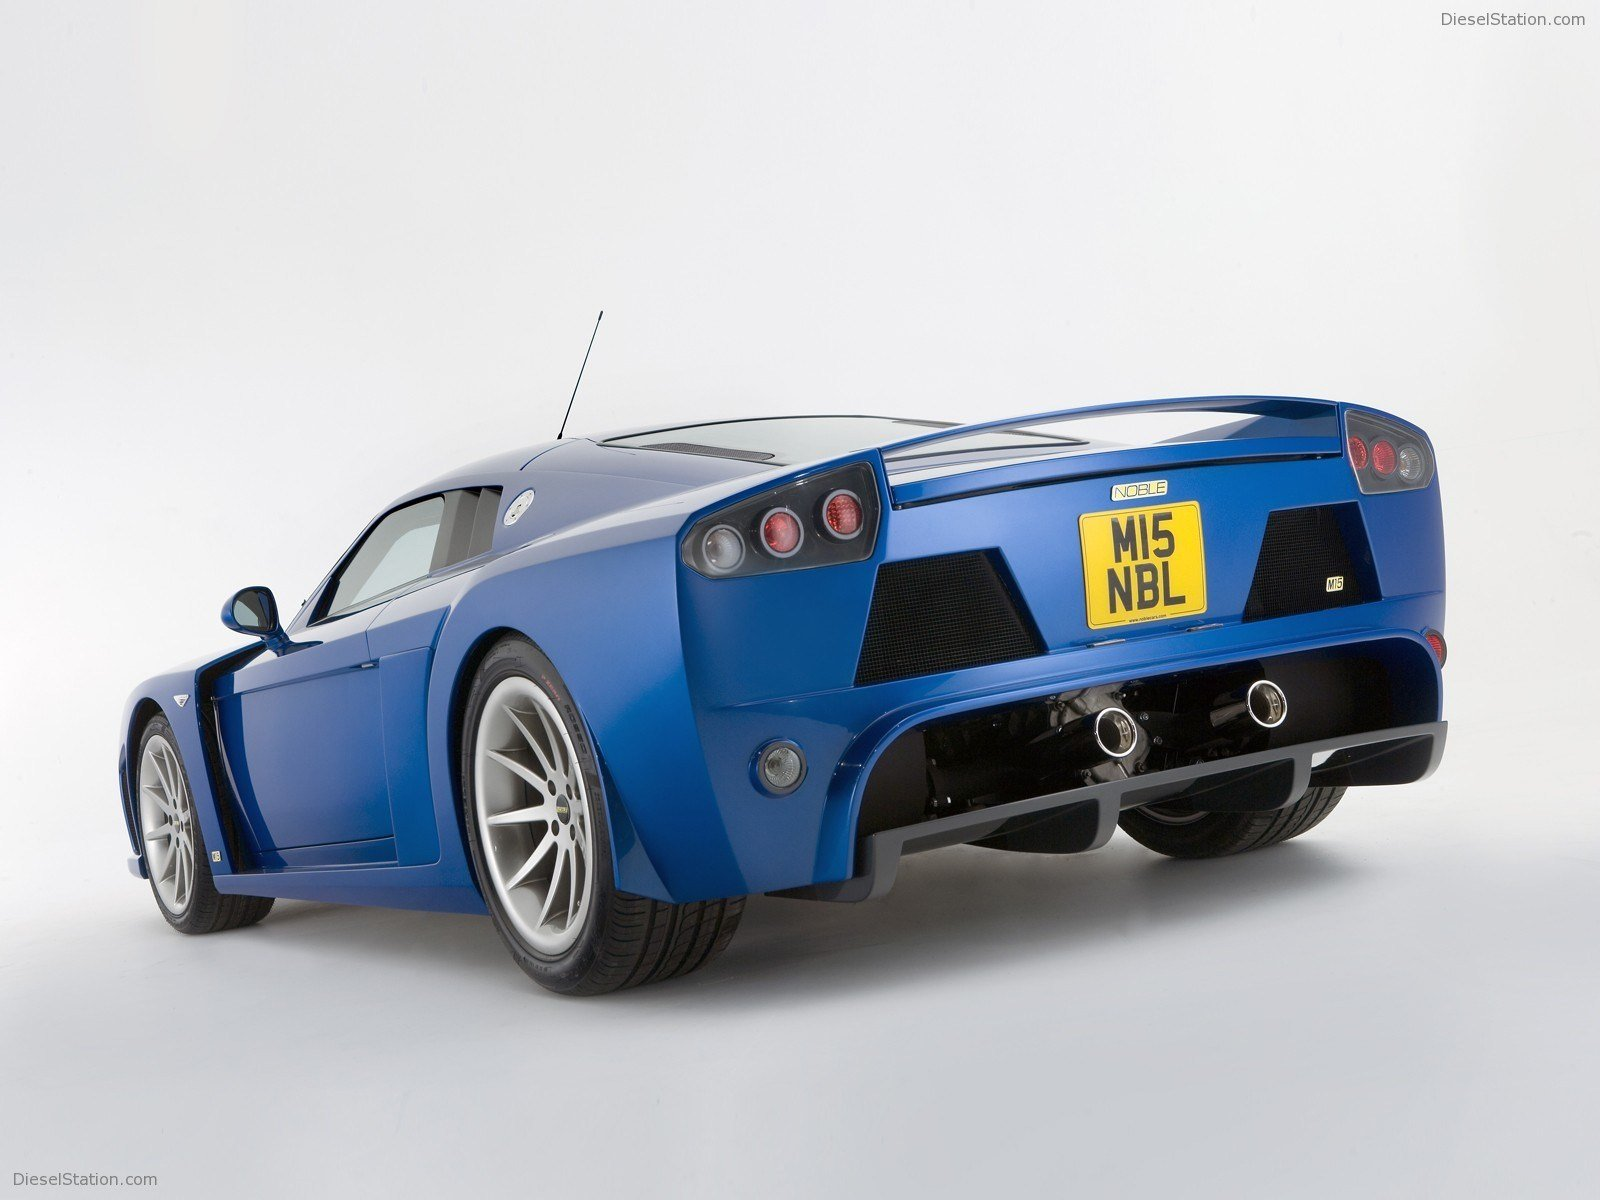 Latest Noble M15 Exotic Car Wallpapers 002 Of 40 Diesel Station Free Download